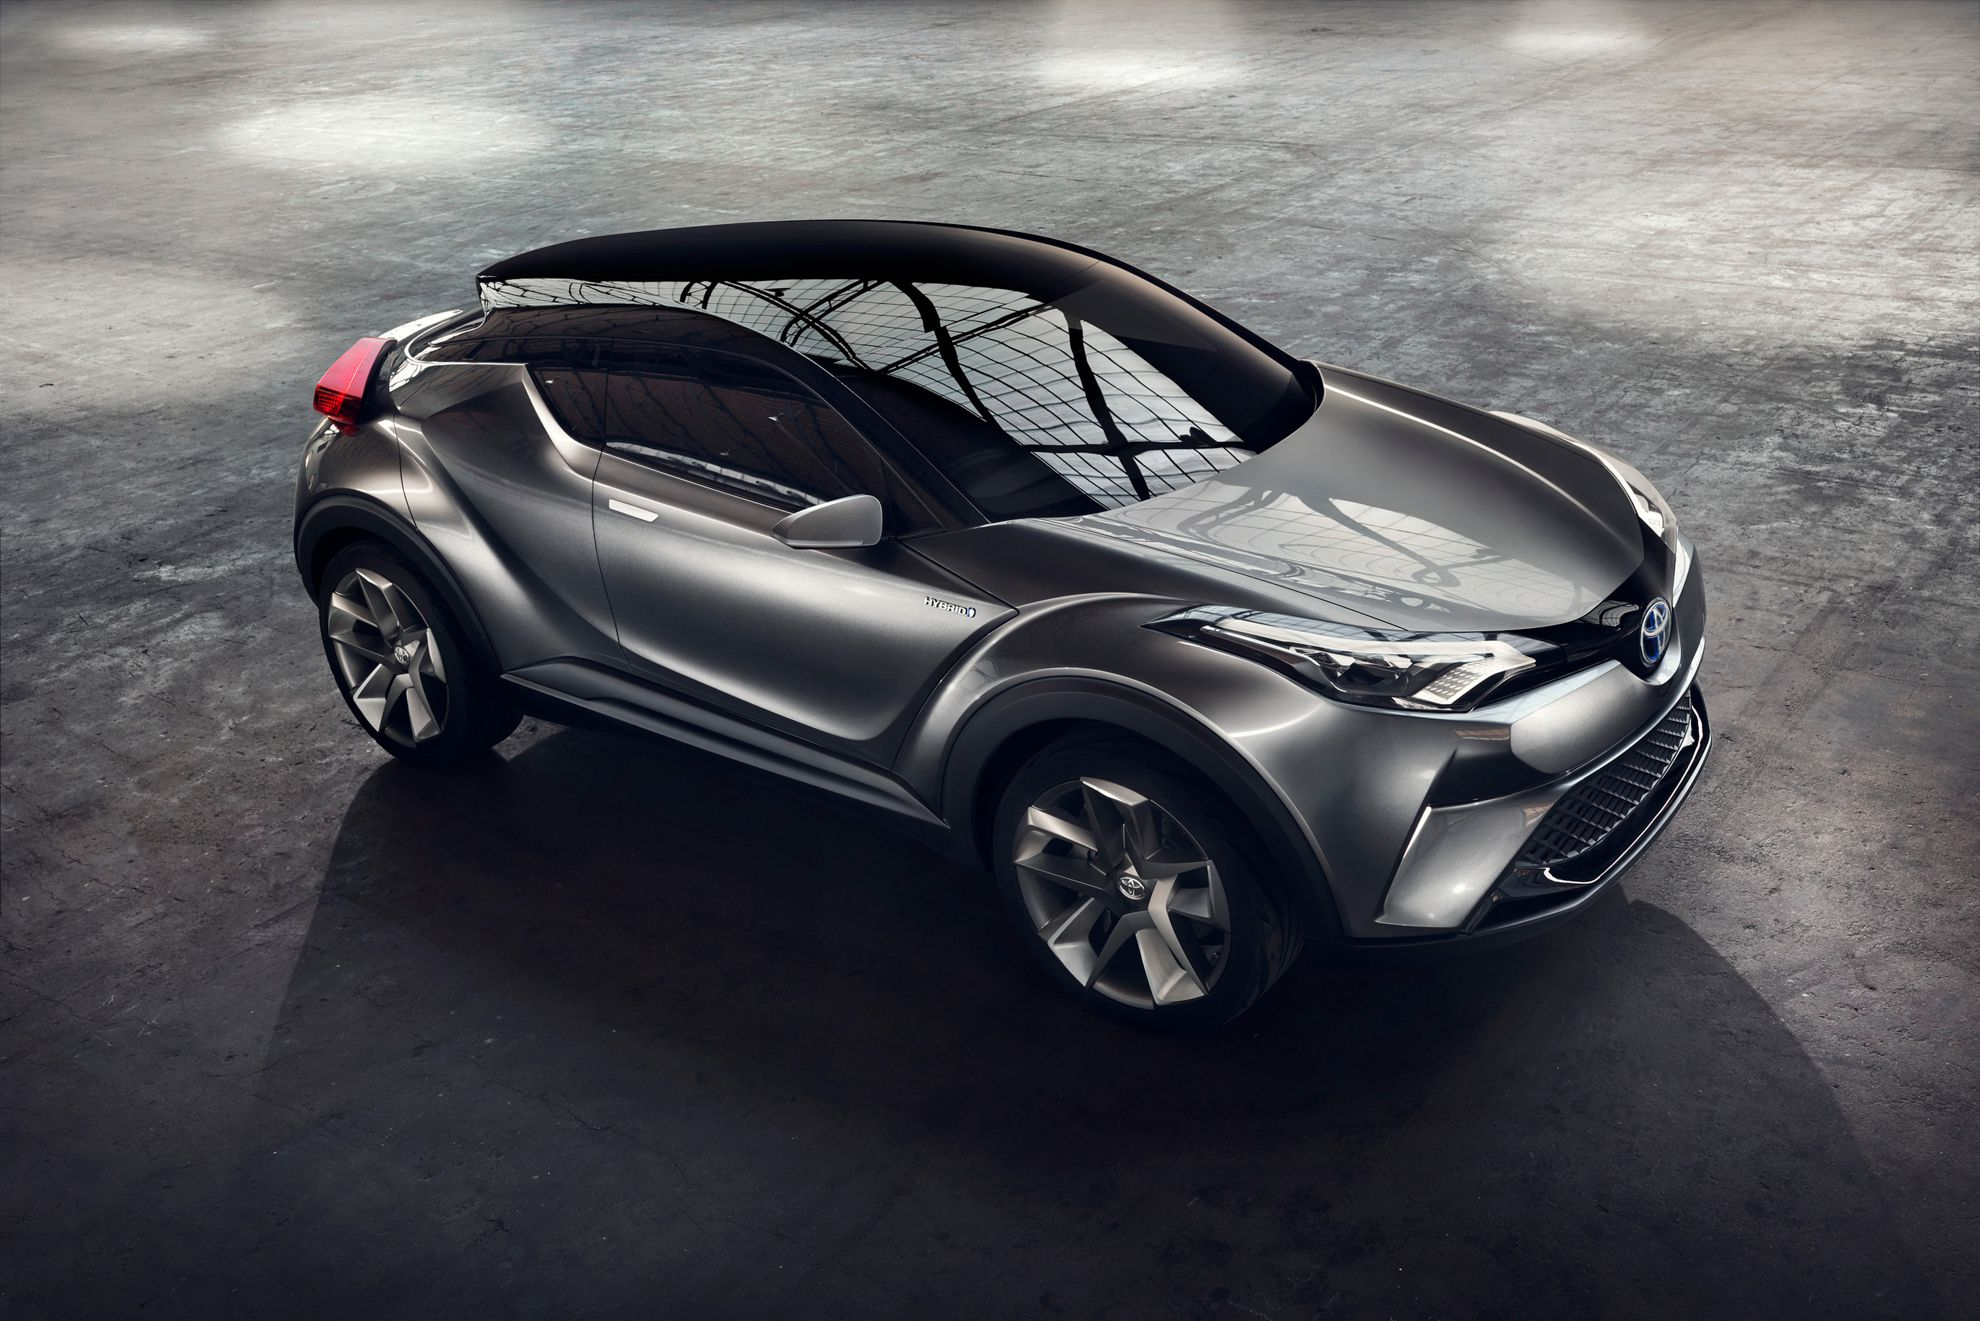 toyota c hr concept hints at new small suv. Black Bedroom Furniture Sets. Home Design Ideas